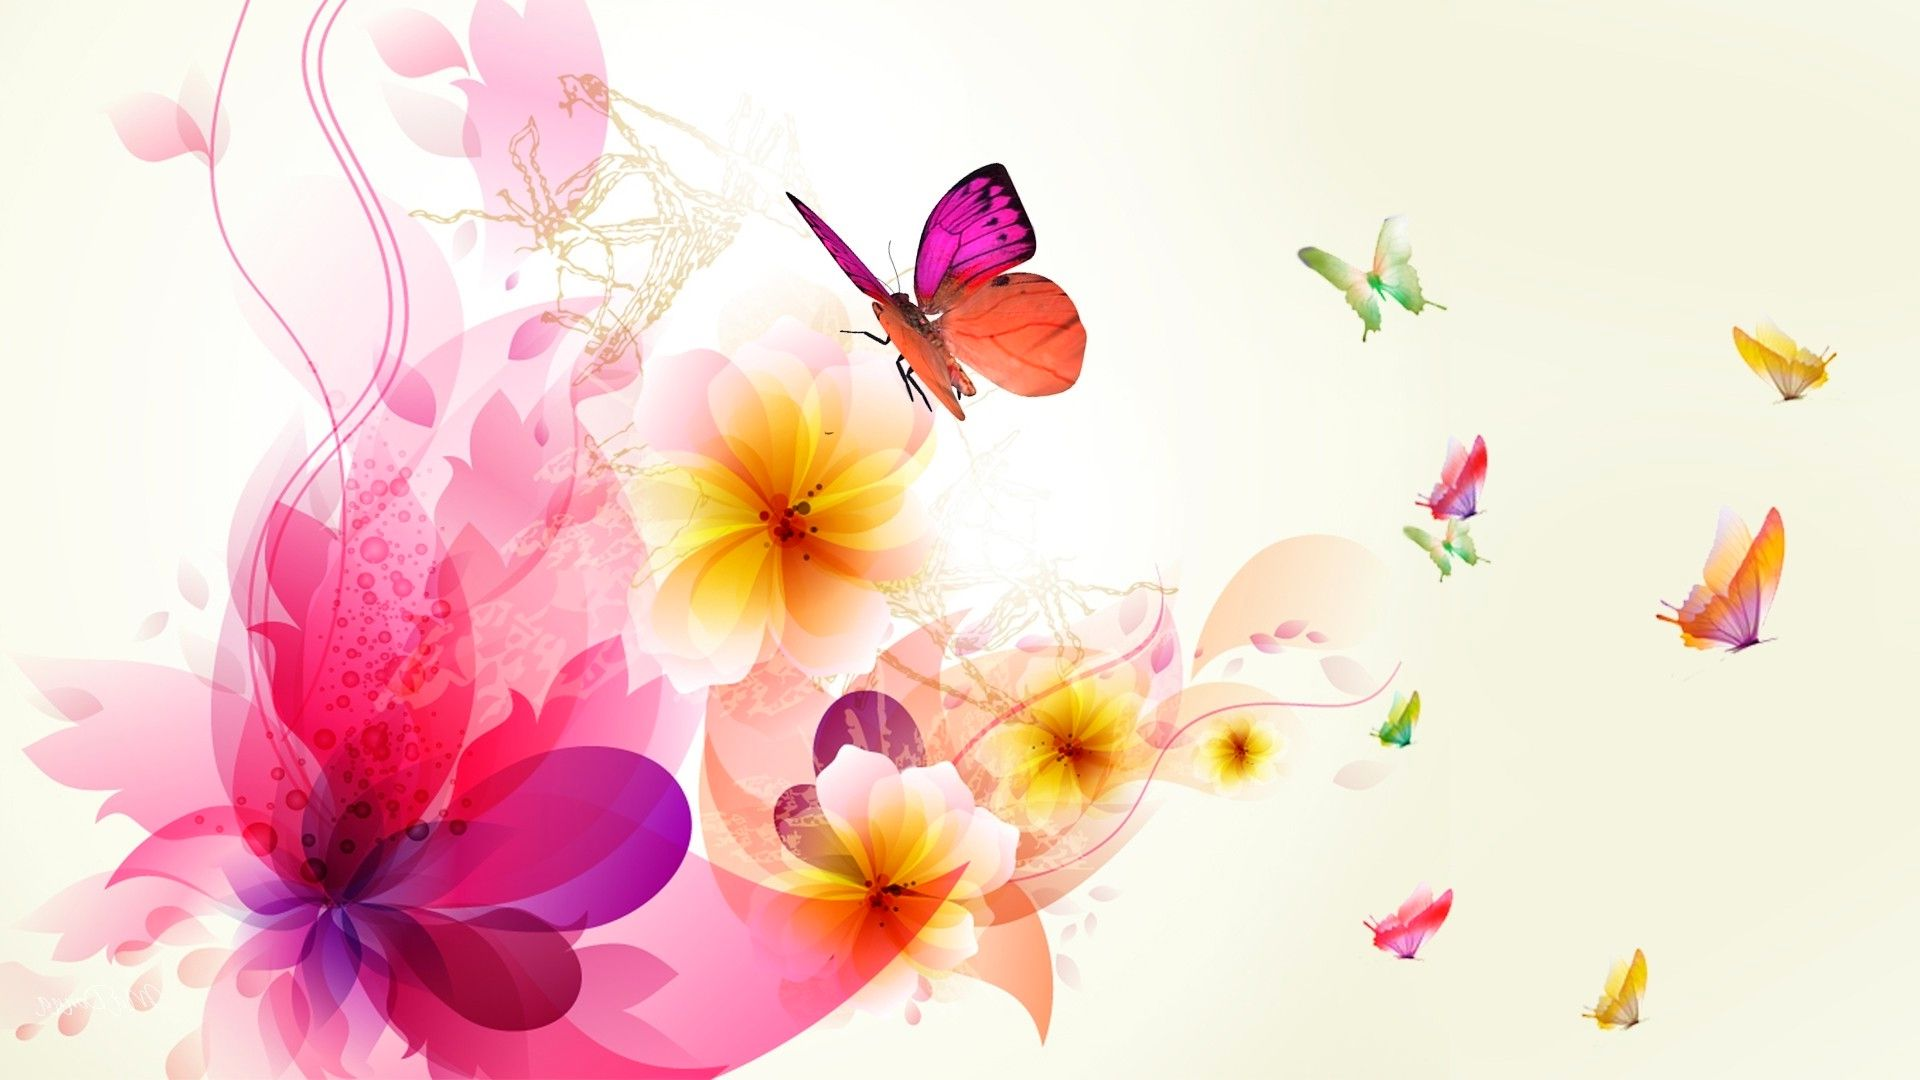 Wallpaper For Android Butterfly, Background, Horizontal, Bright Butterflies And Flowers